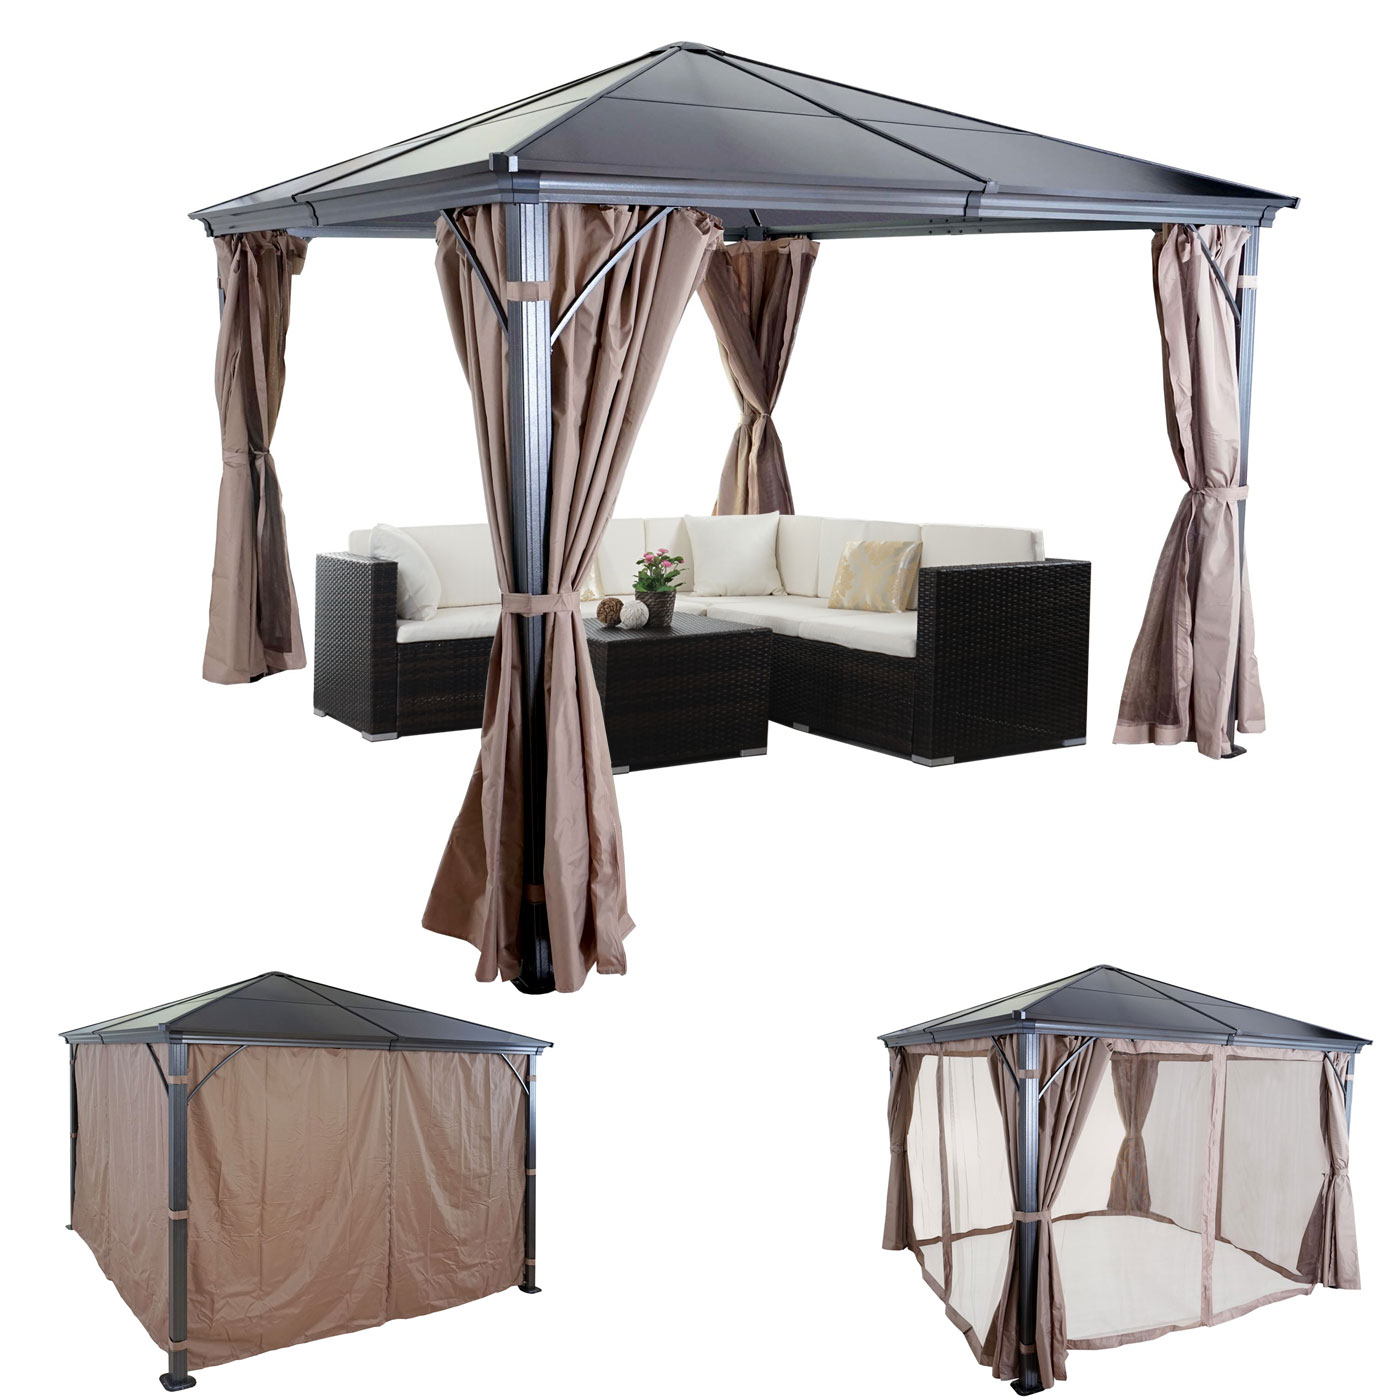 hardtop pergola hwc c74 garten pavillon kunststoff dach seitenwand moskitonetz alu 3x3m. Black Bedroom Furniture Sets. Home Design Ideas